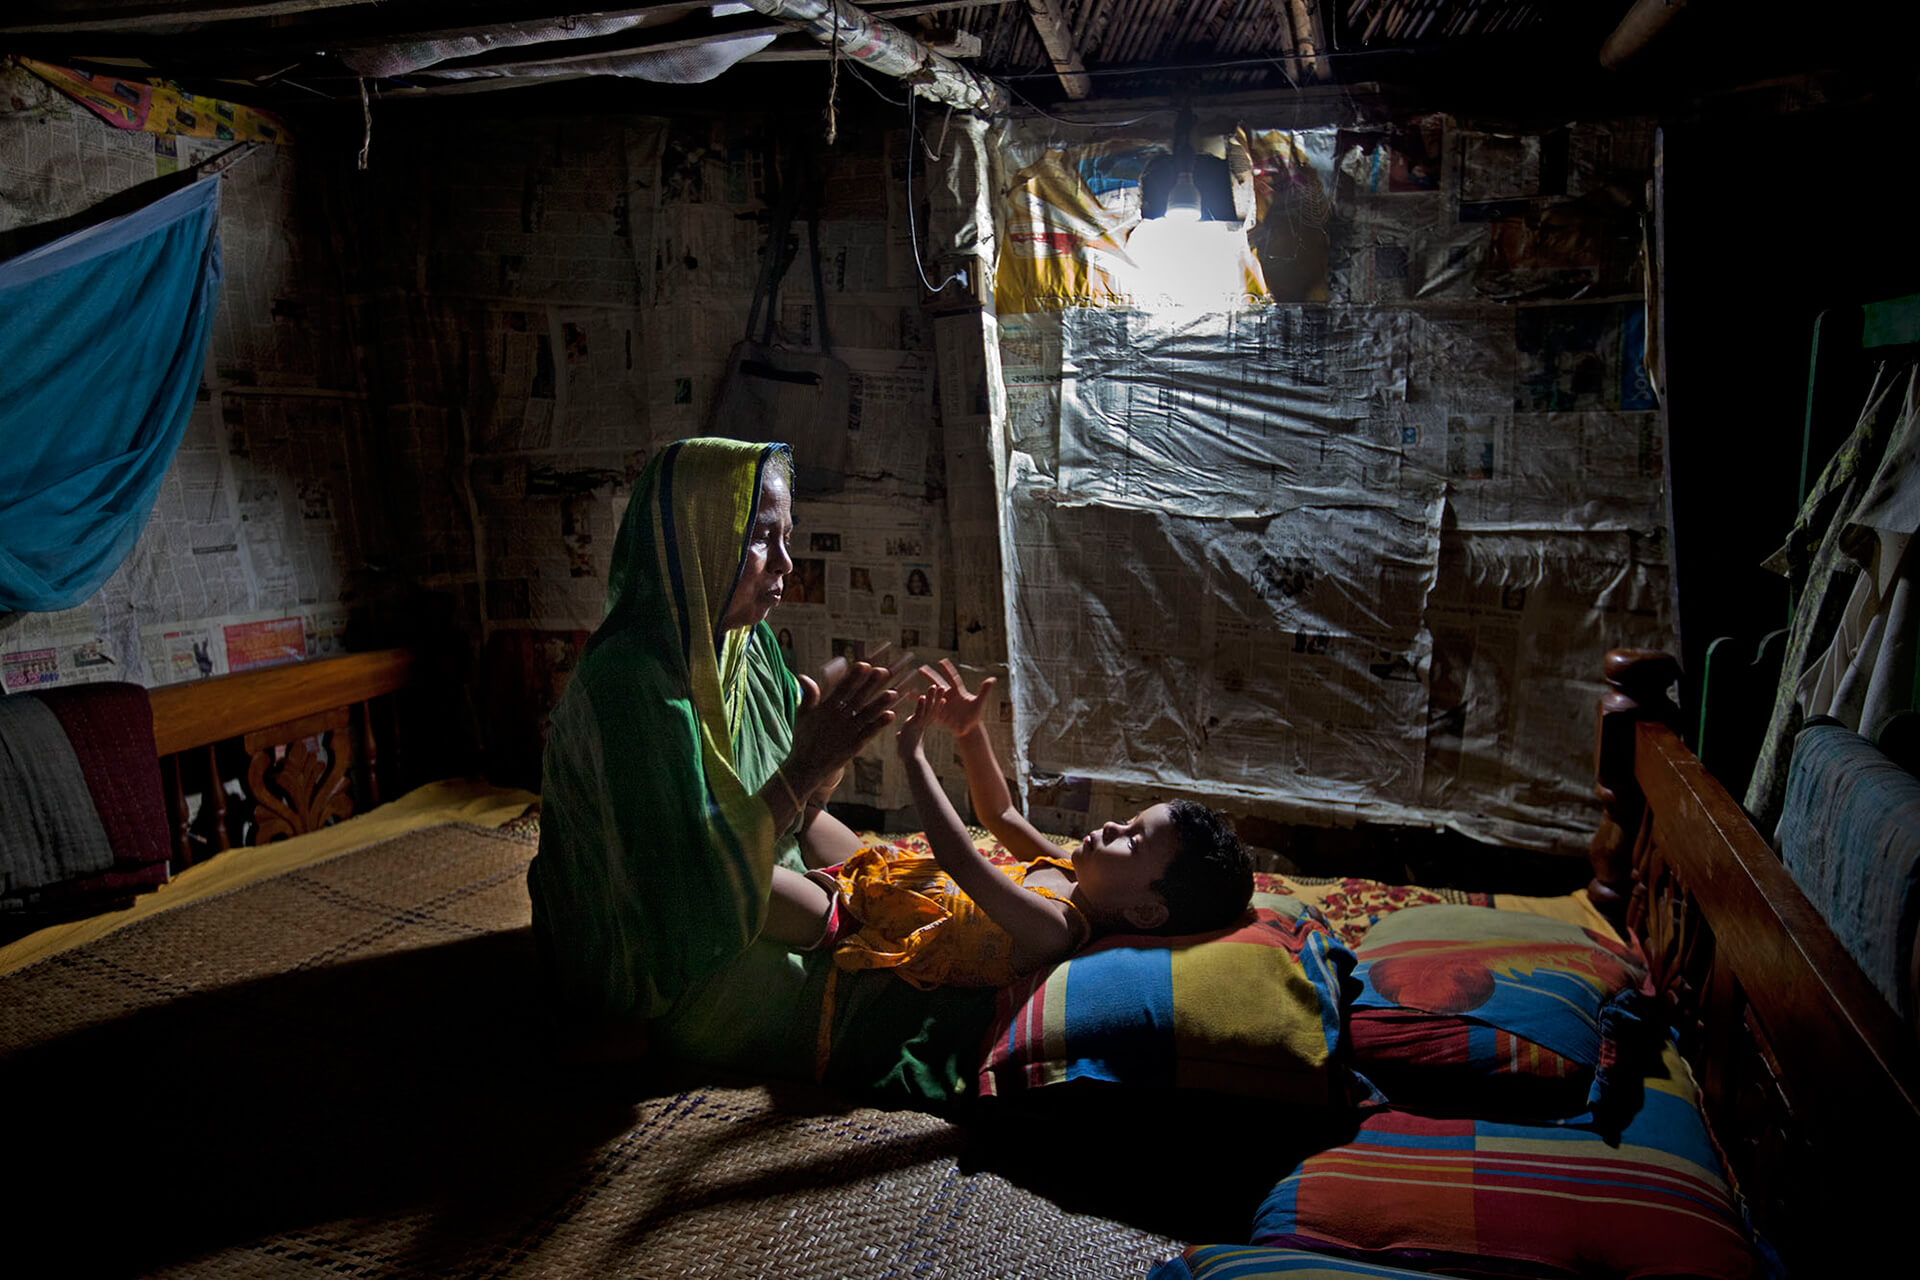 Shofiqul Islam was conned by traffickers and stranded in Libya without a job. Shofiq's mother playing with her granddaughter | Shahidul Alam | World Photography Day | STIRworld